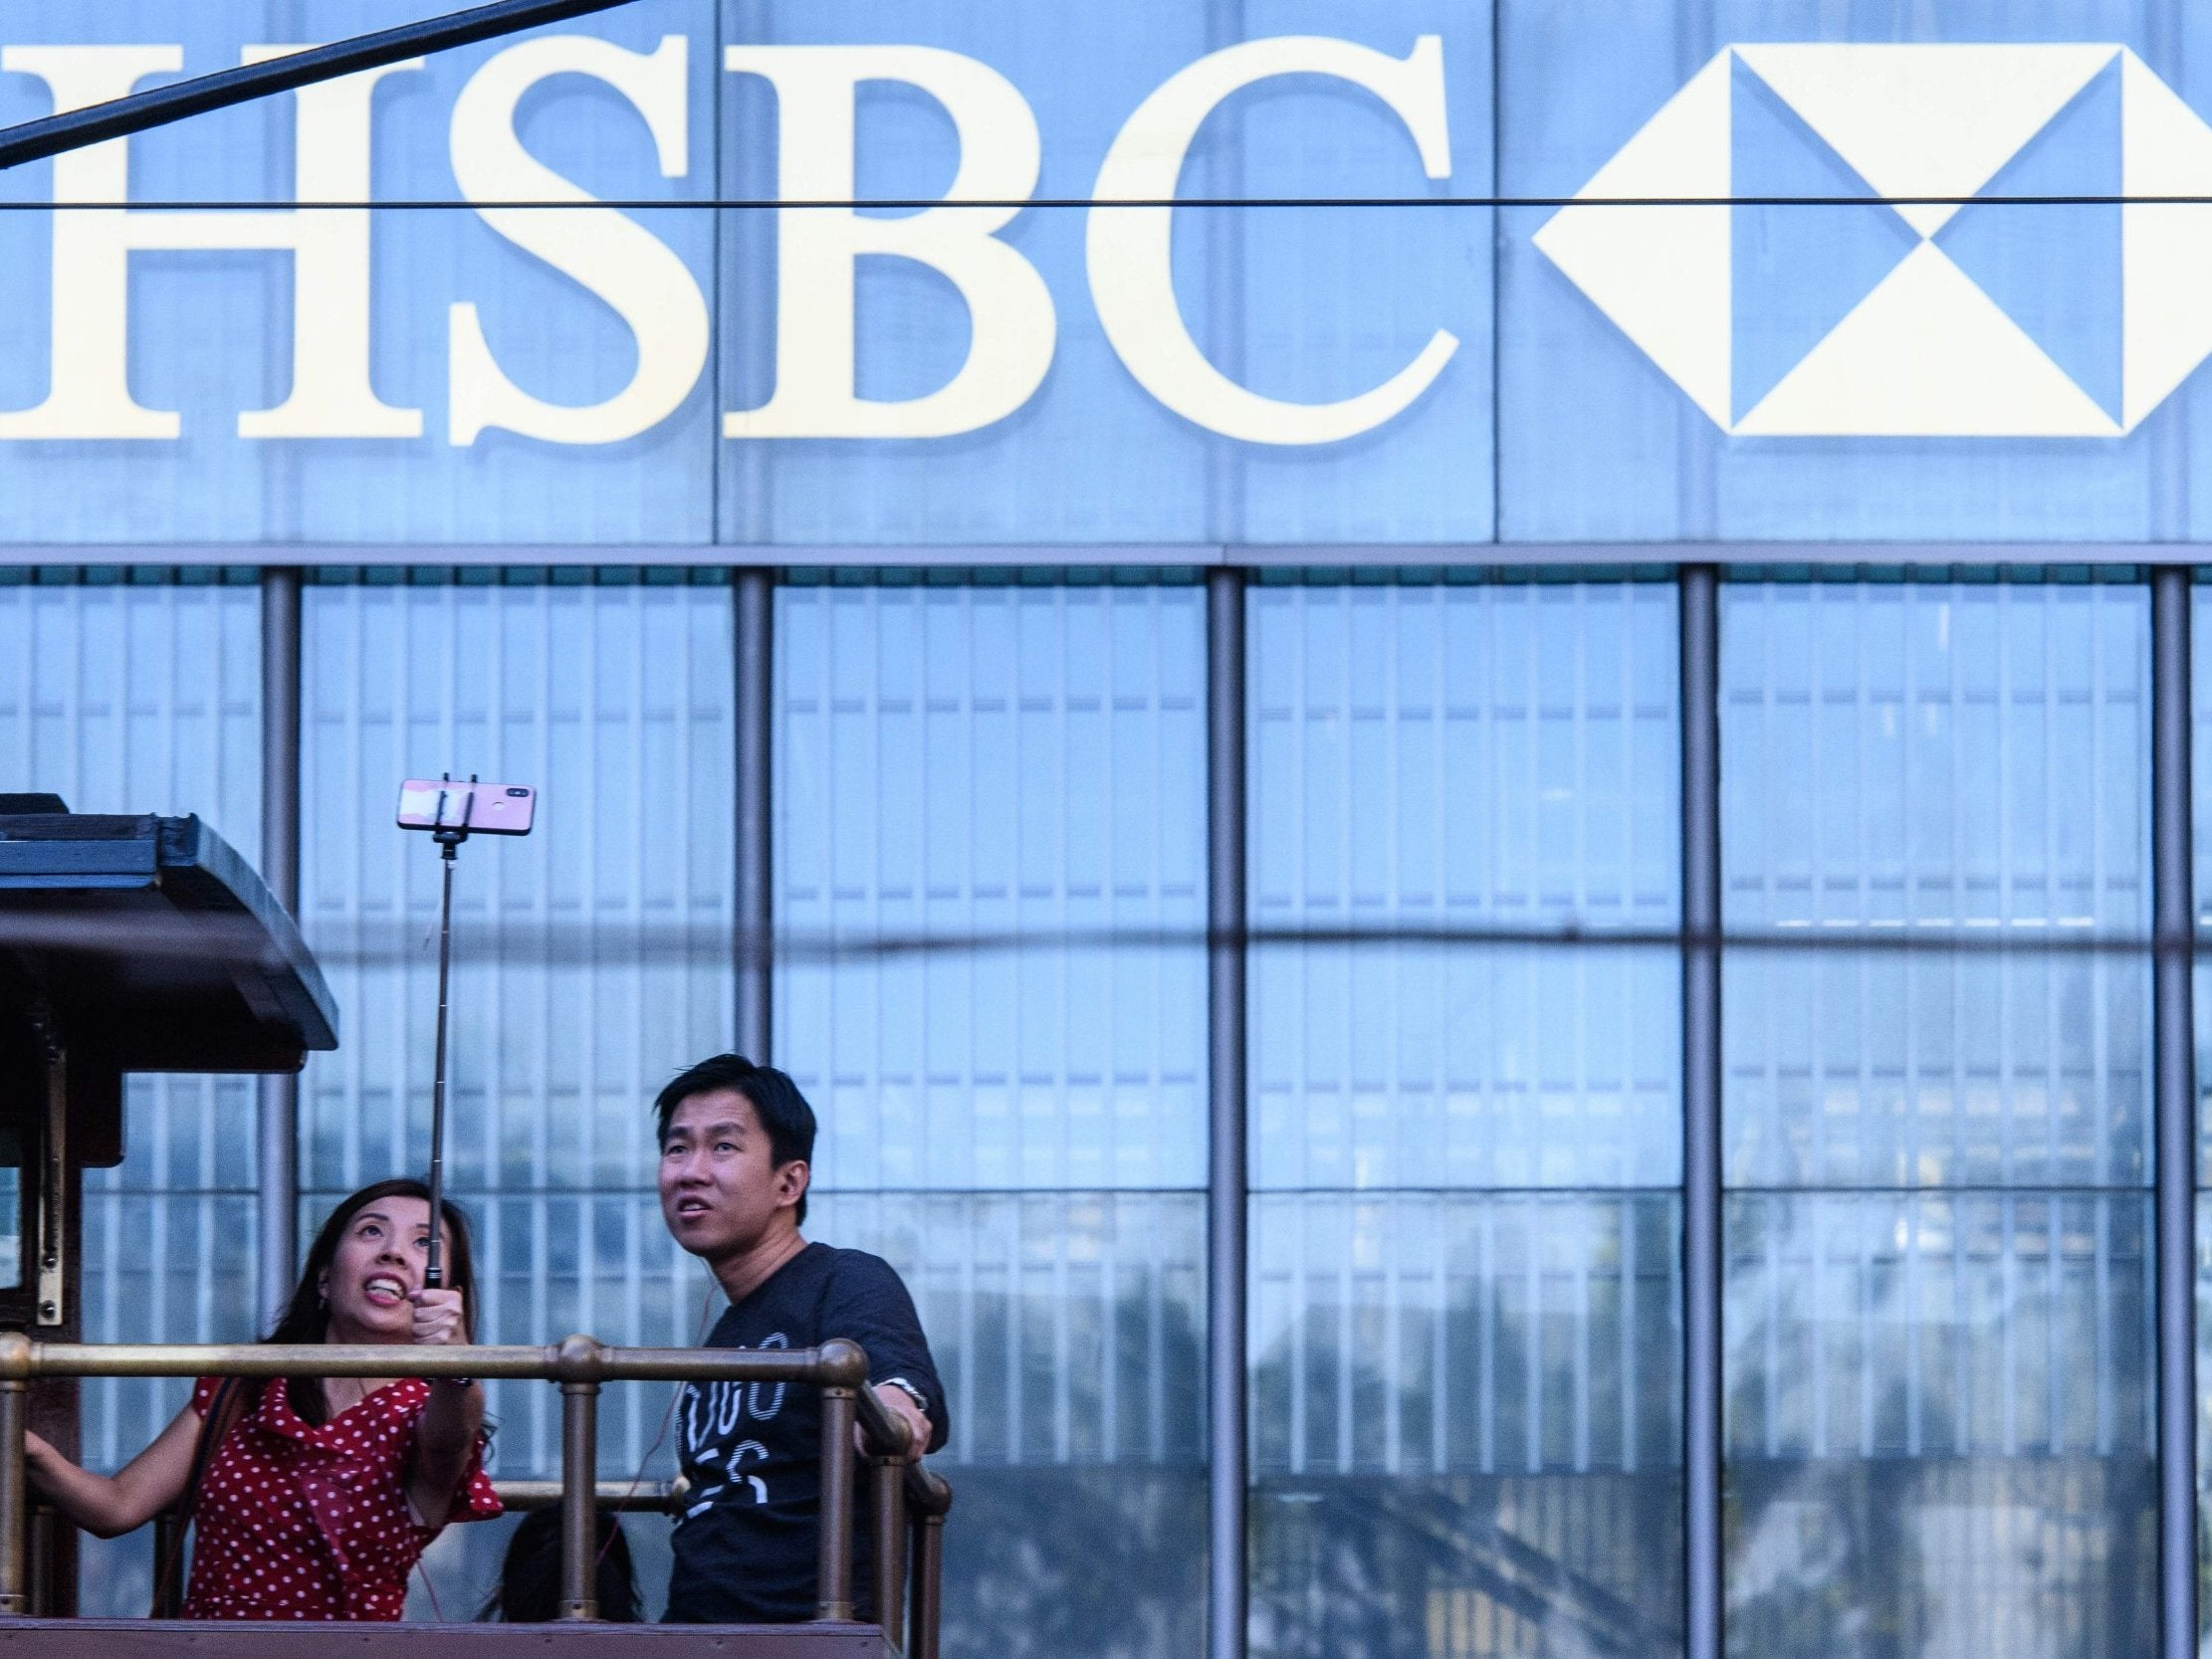 HSBC - latest news, breaking stories and comment - The